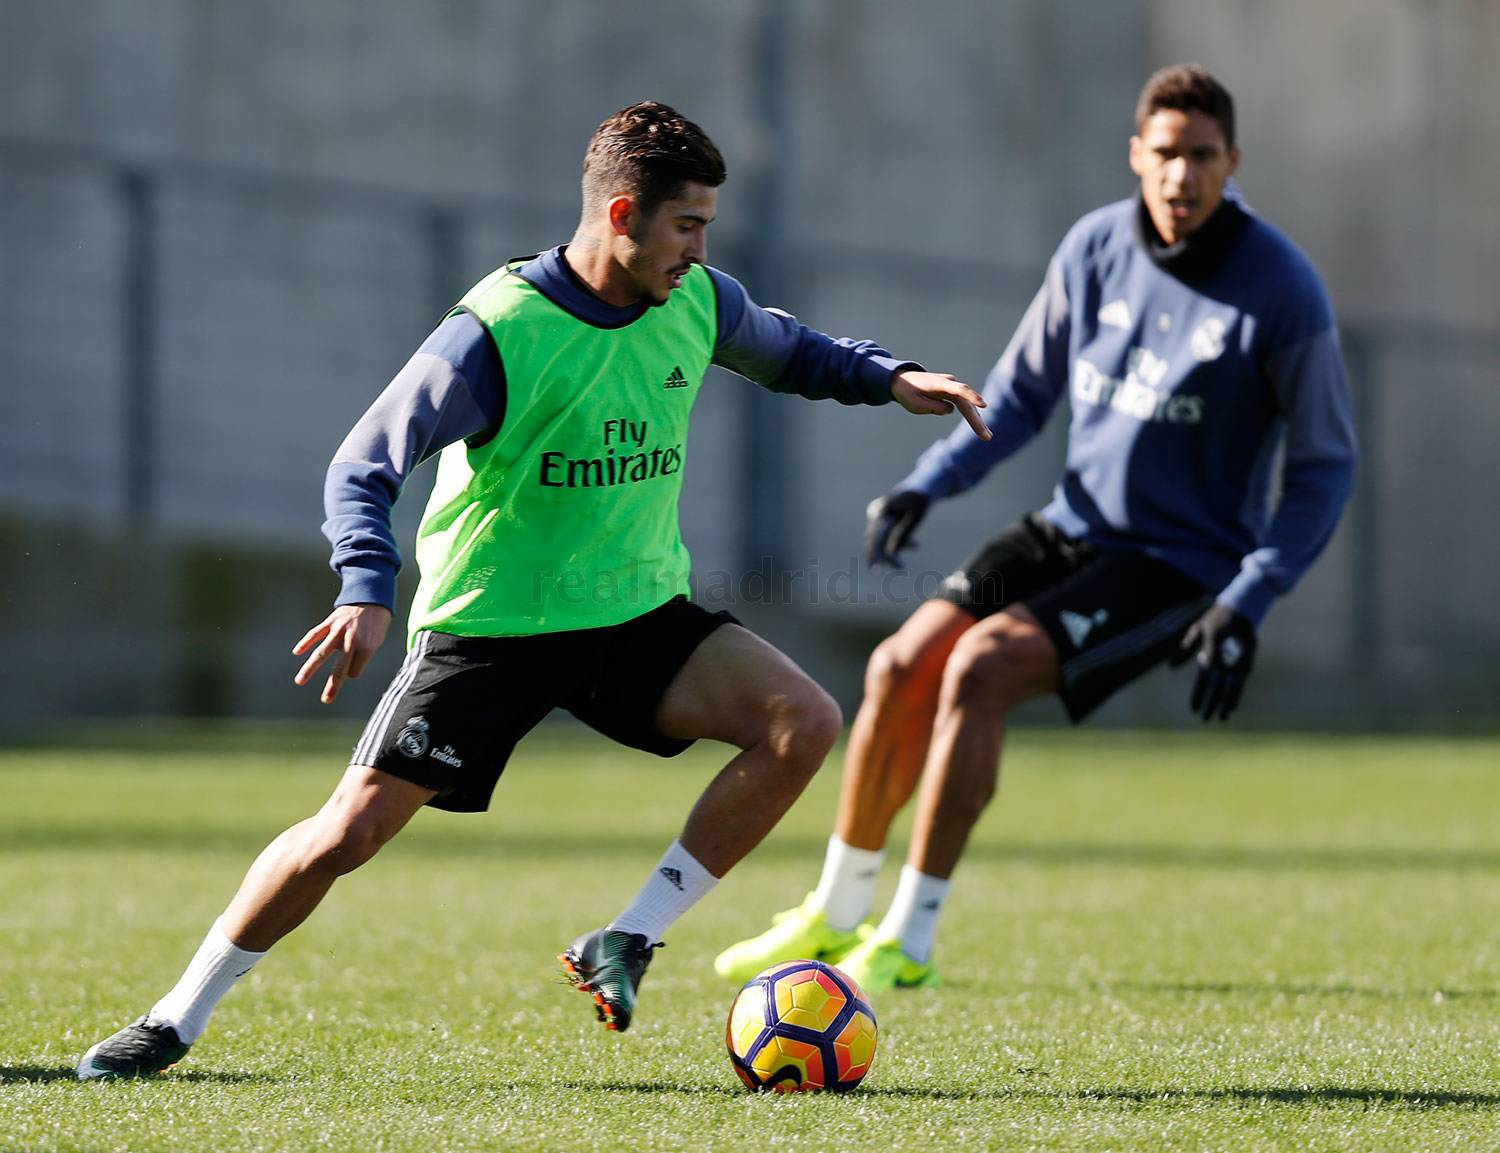 Real Madrid - Entrenamiento del Real Madrid - 05-02-2017